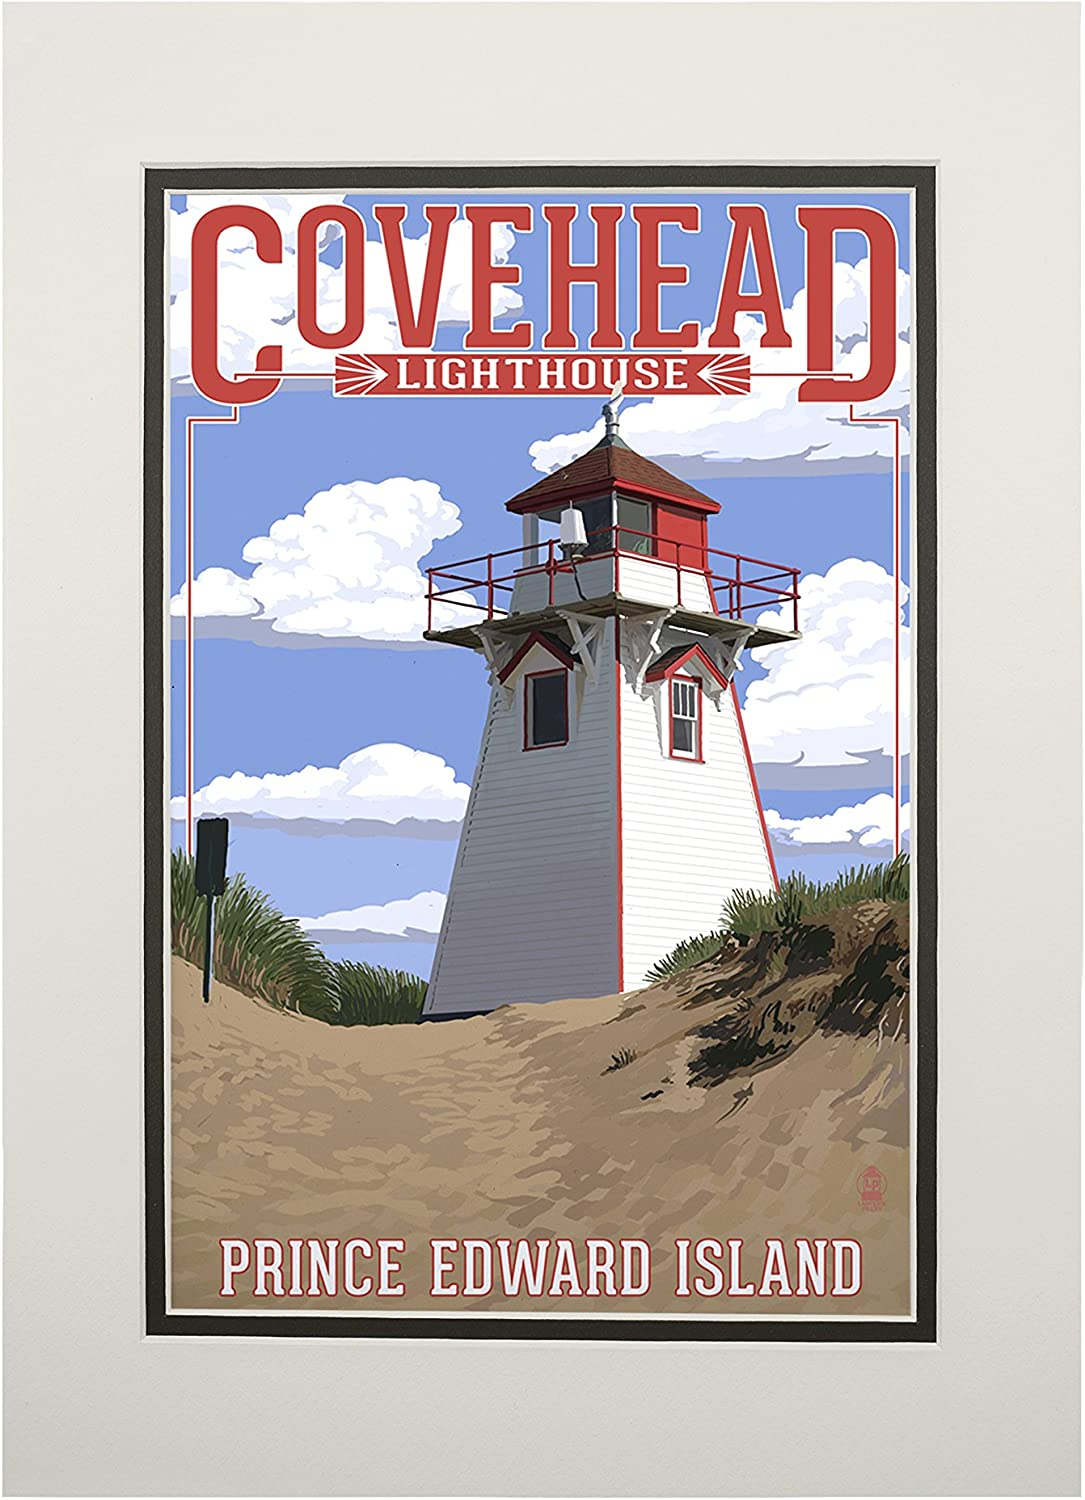 Prince Edward Island, Canada - Covehead Lighthouse (11x14 Double-Matted Art Print, Wall Decor Ready to Frame)